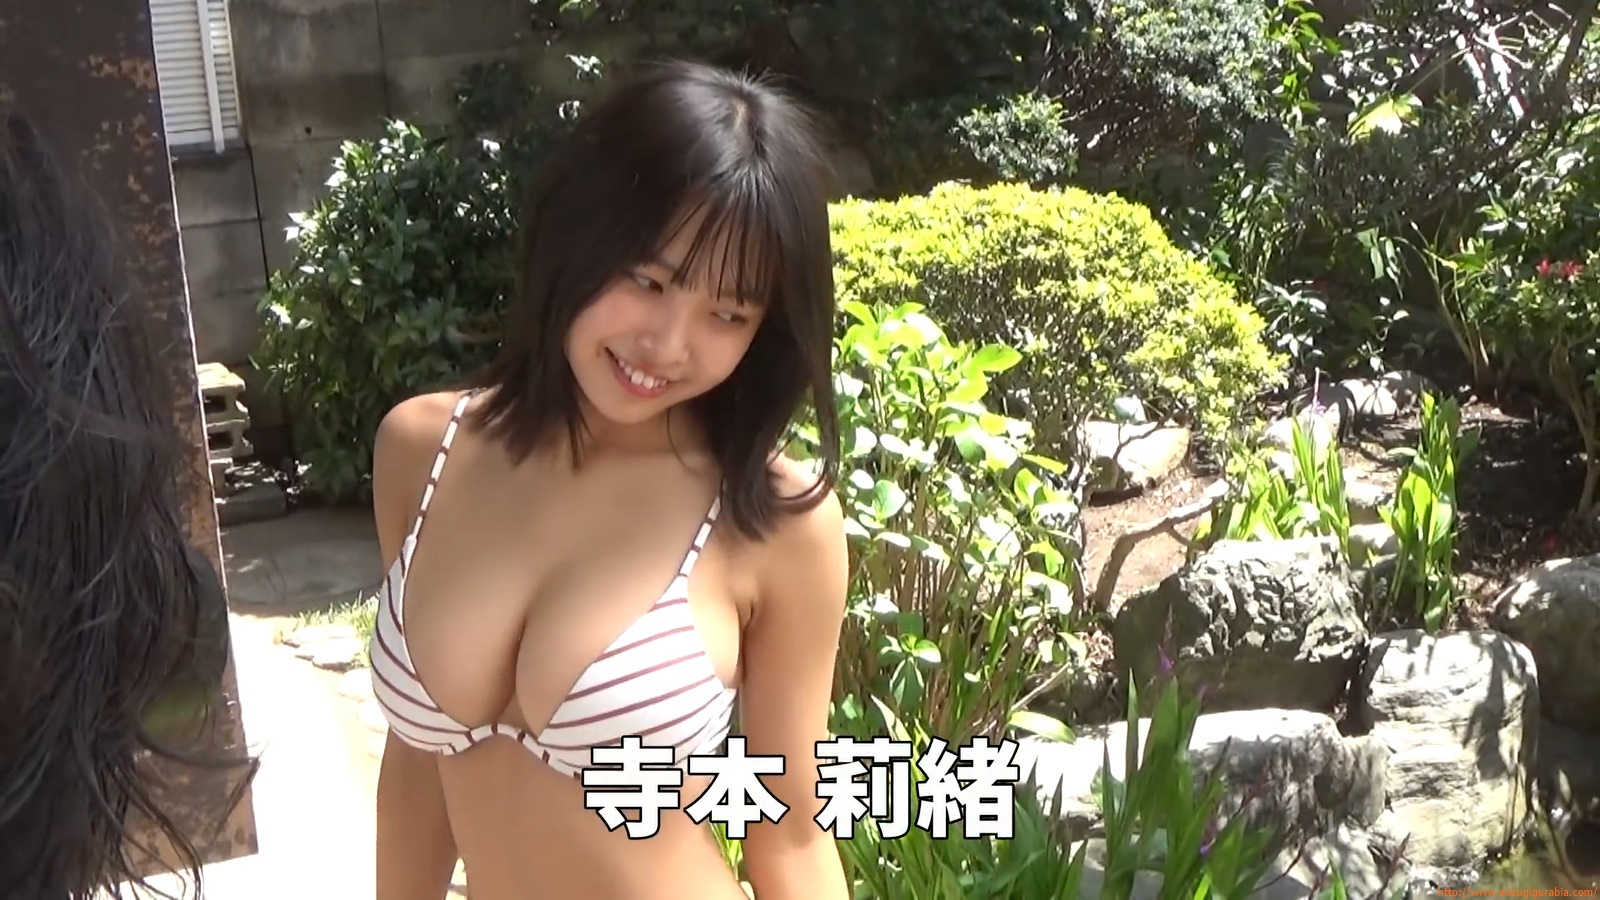 The gravure that makes all Japan cheer up Rio Teramoto 005